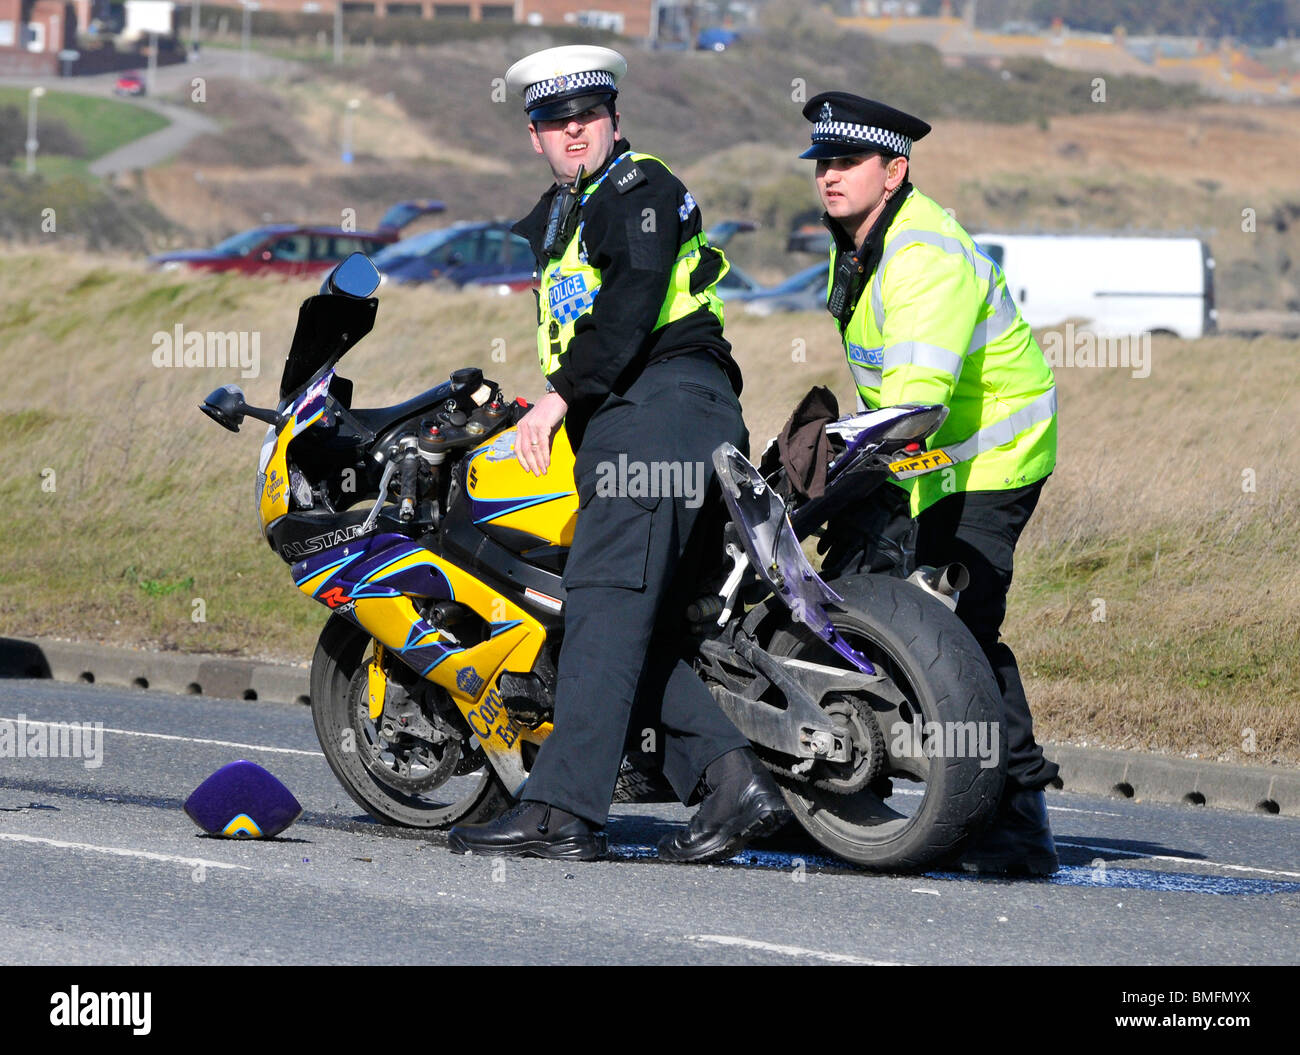 Police Motorcycle At Incident Crash Officers Remove The Wreckage Of A Crashed Motorbike From Road